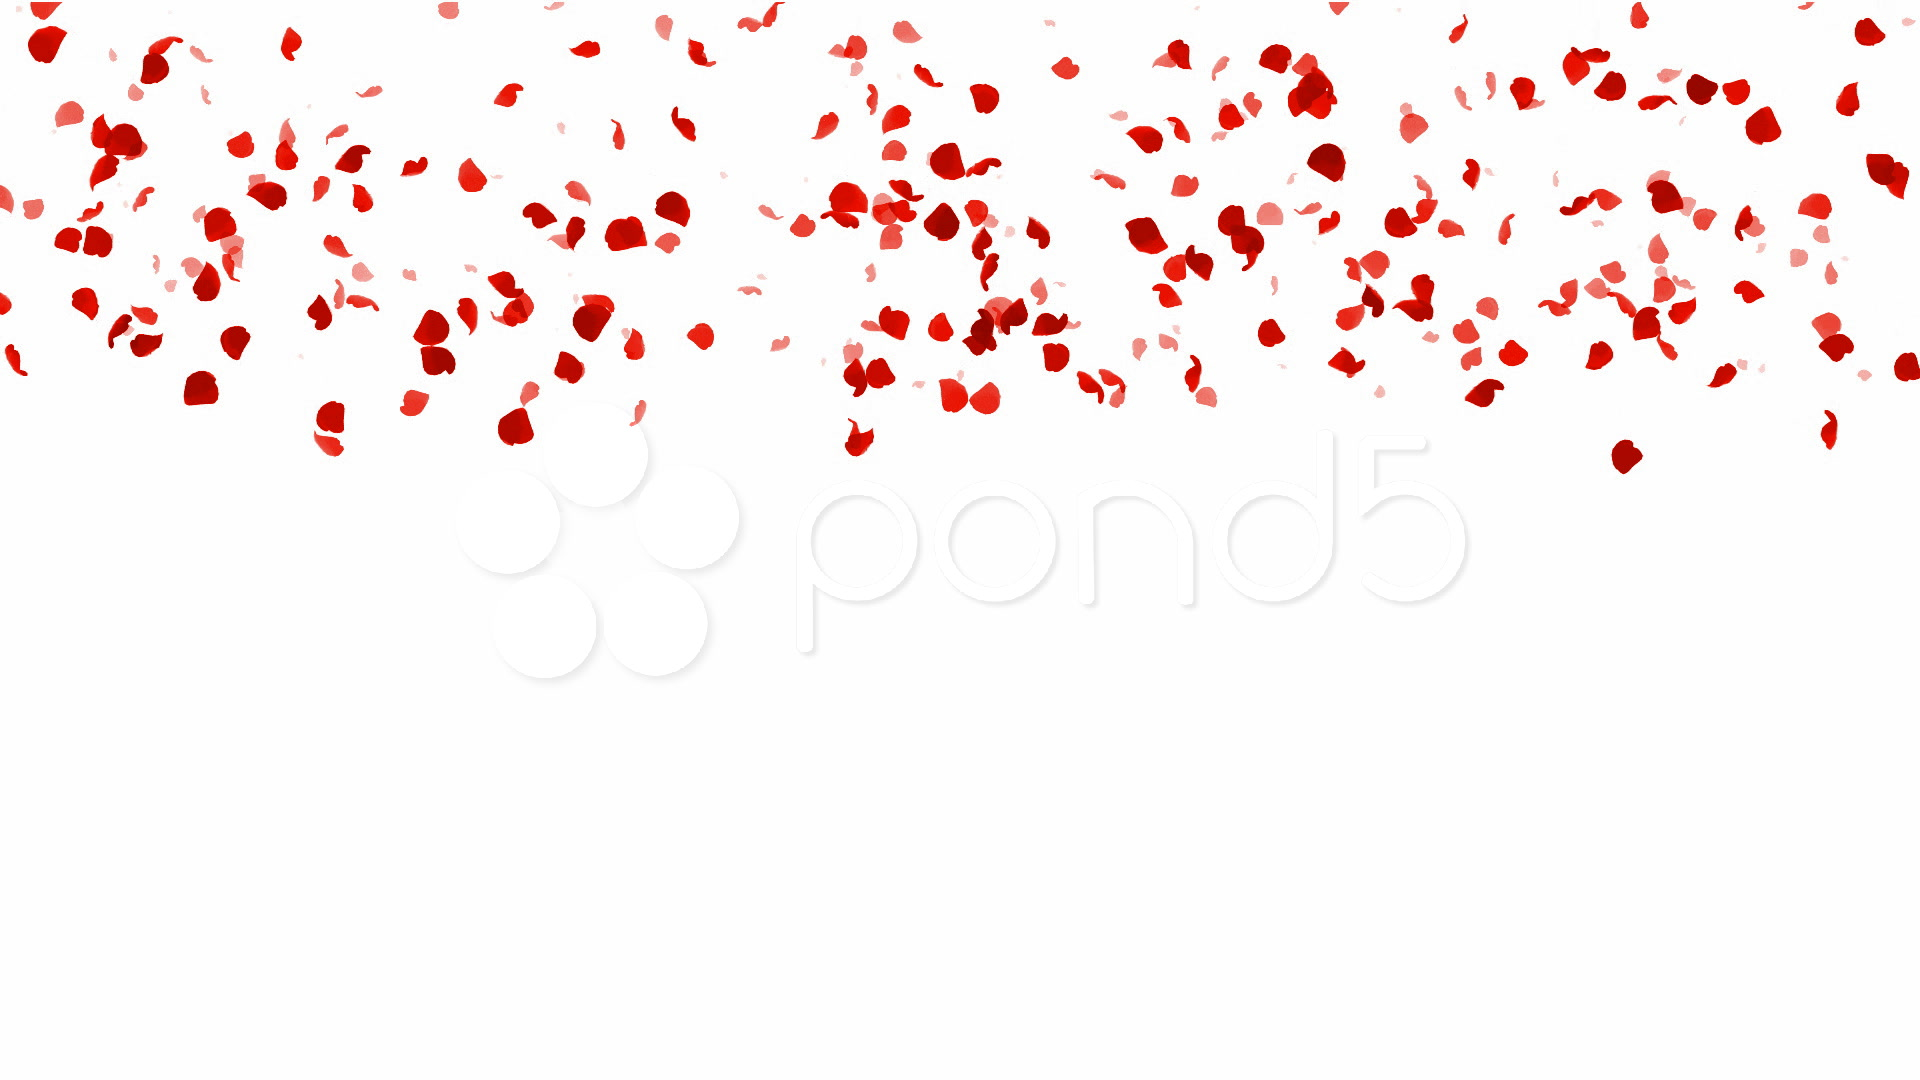 Rose with Petals Falling